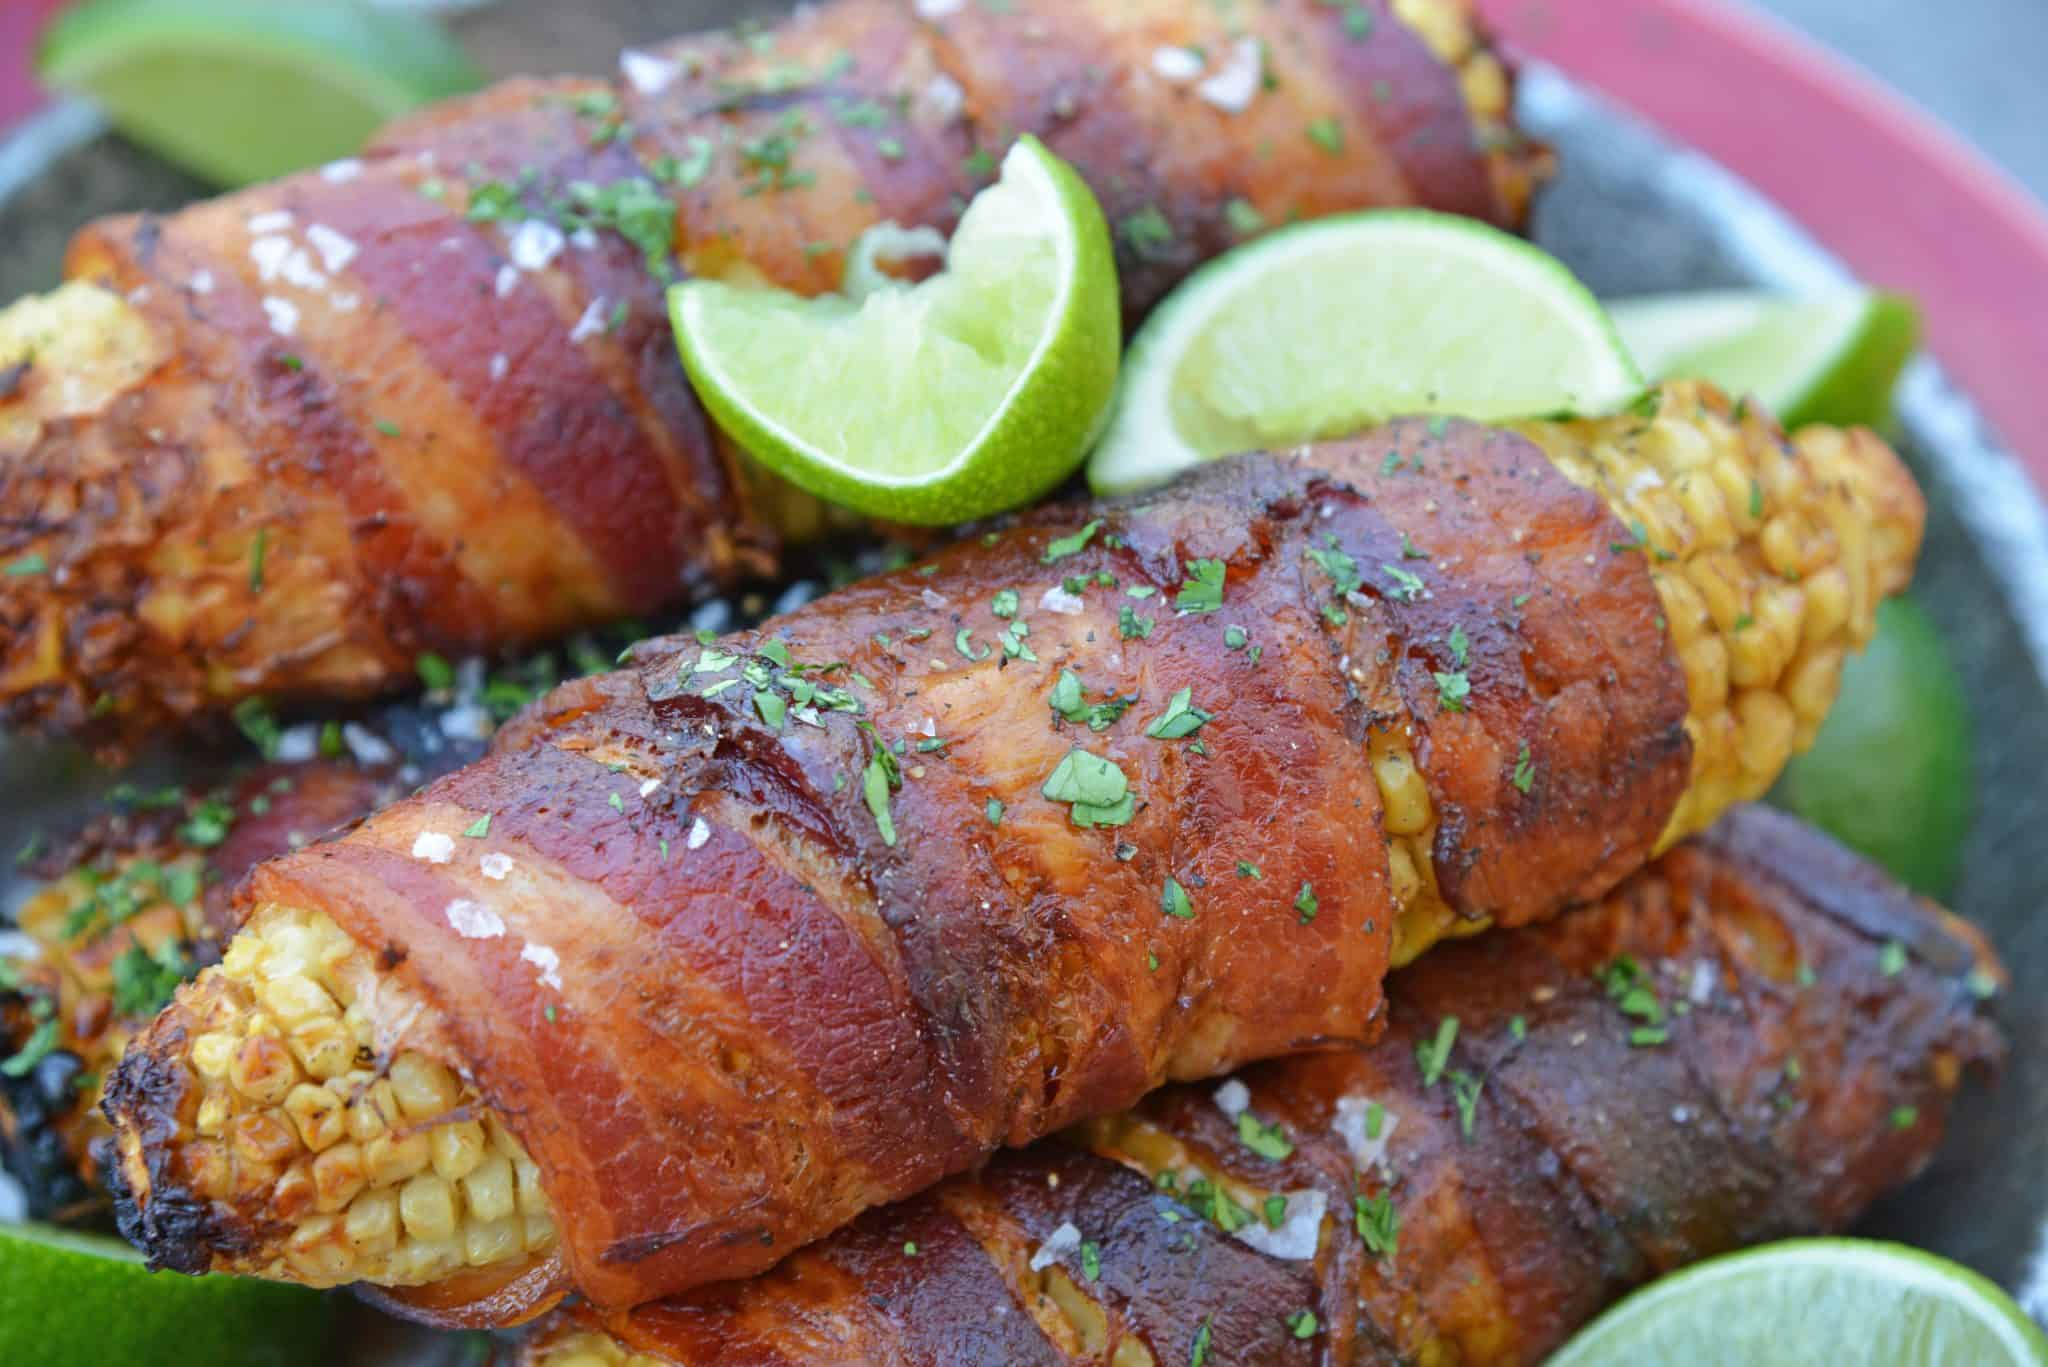 Cilantro Lime Bacon Wrapped Corn is a zesty grilled corn side dish that is perfect for any summer BBQ or Mexican fiesta! A sweet & zesty flavor combination! #grilledcorn #baconwrappedcorn #mexicancorn www.savoryexperiments.com